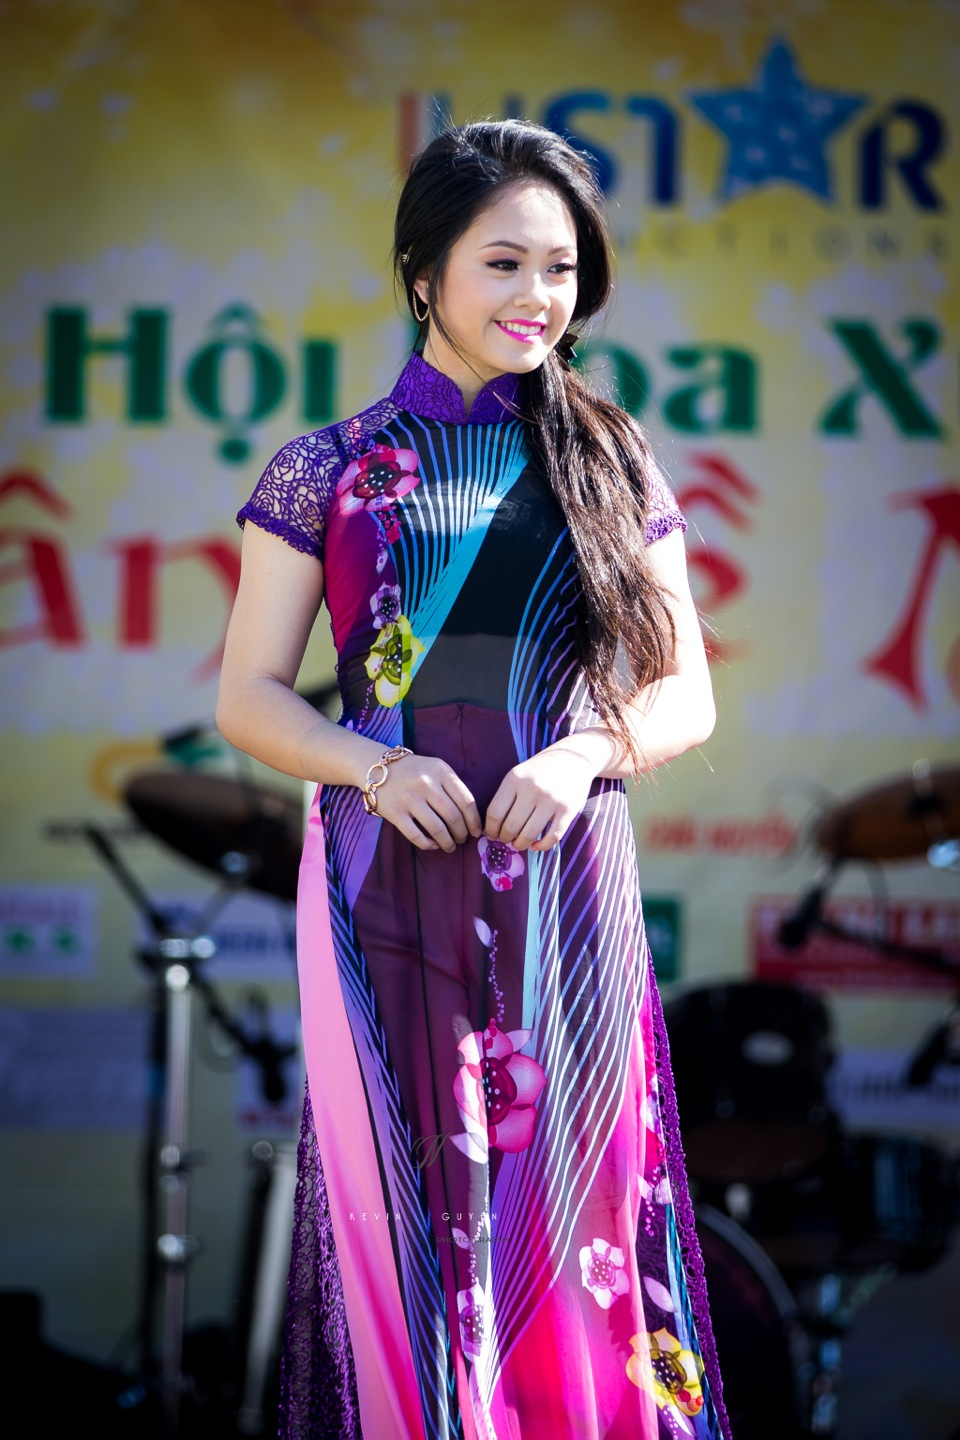 Hoi Hoa Xuân 2015 - Miss Vietnam of Northern California 2015 - Grand Century Mall - San Jose, CA - Image 133